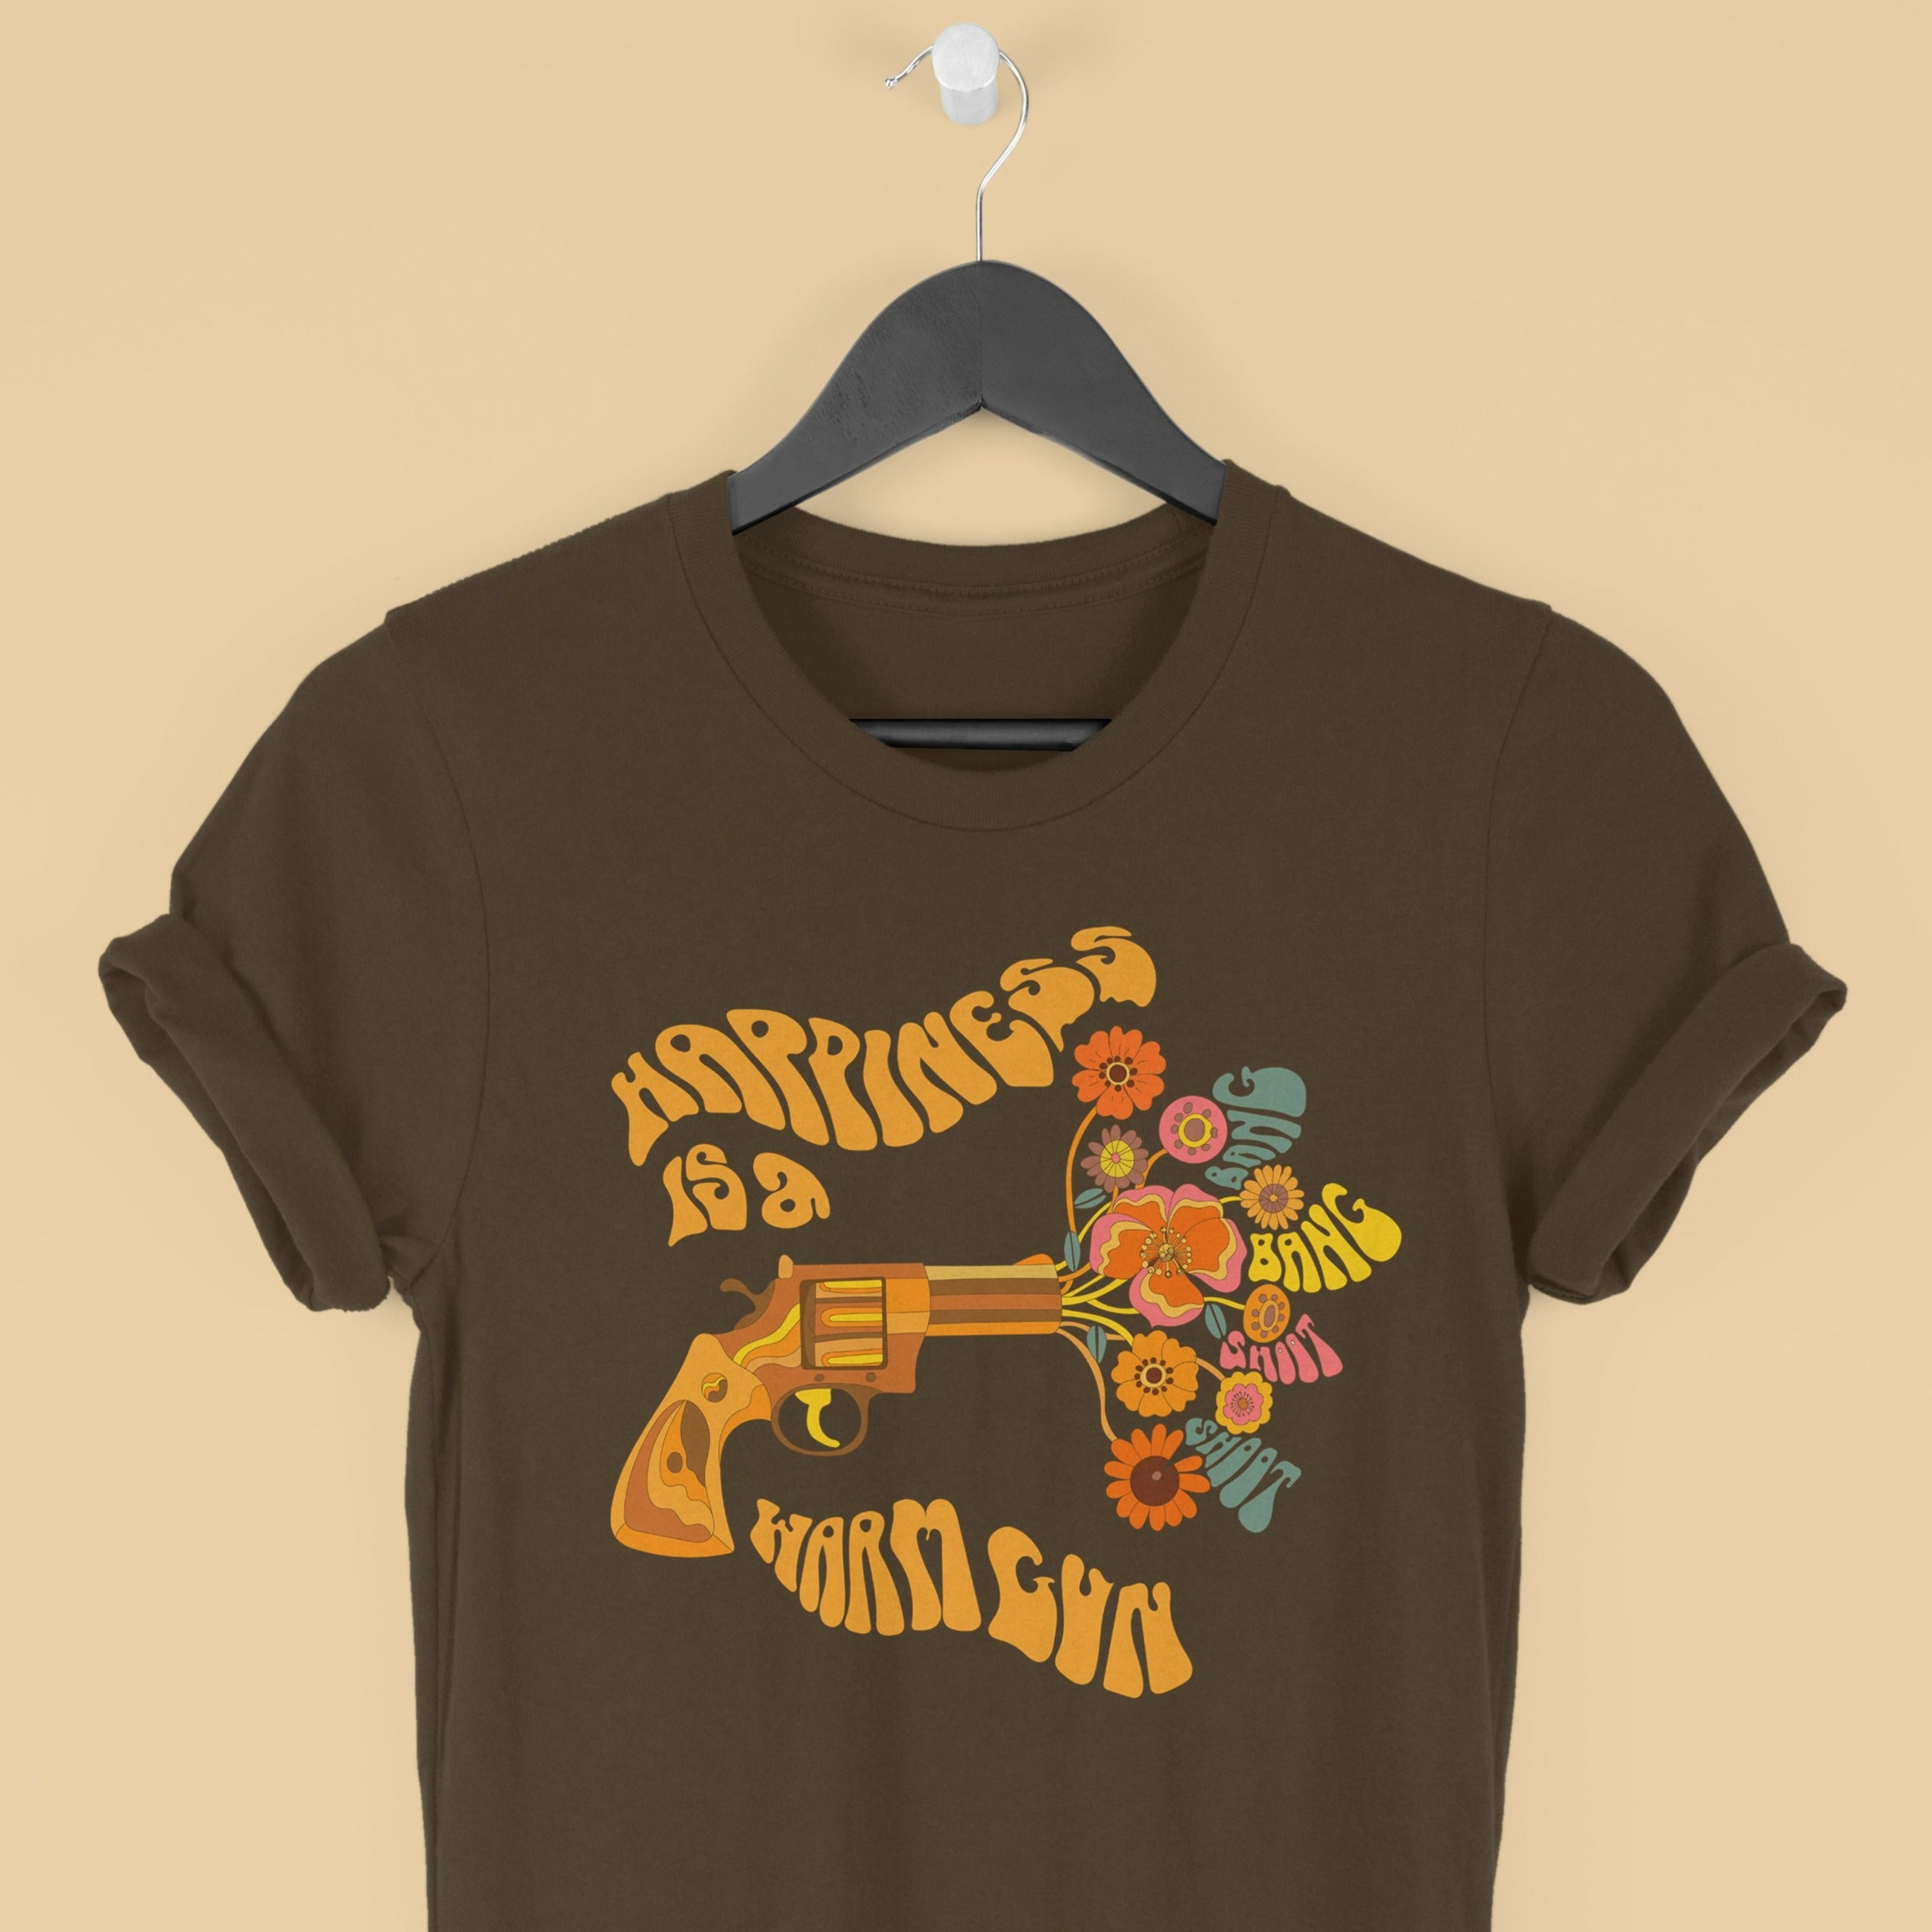 Happiness is a Warm Gun - Beatles Inspired Unisex T-shirt